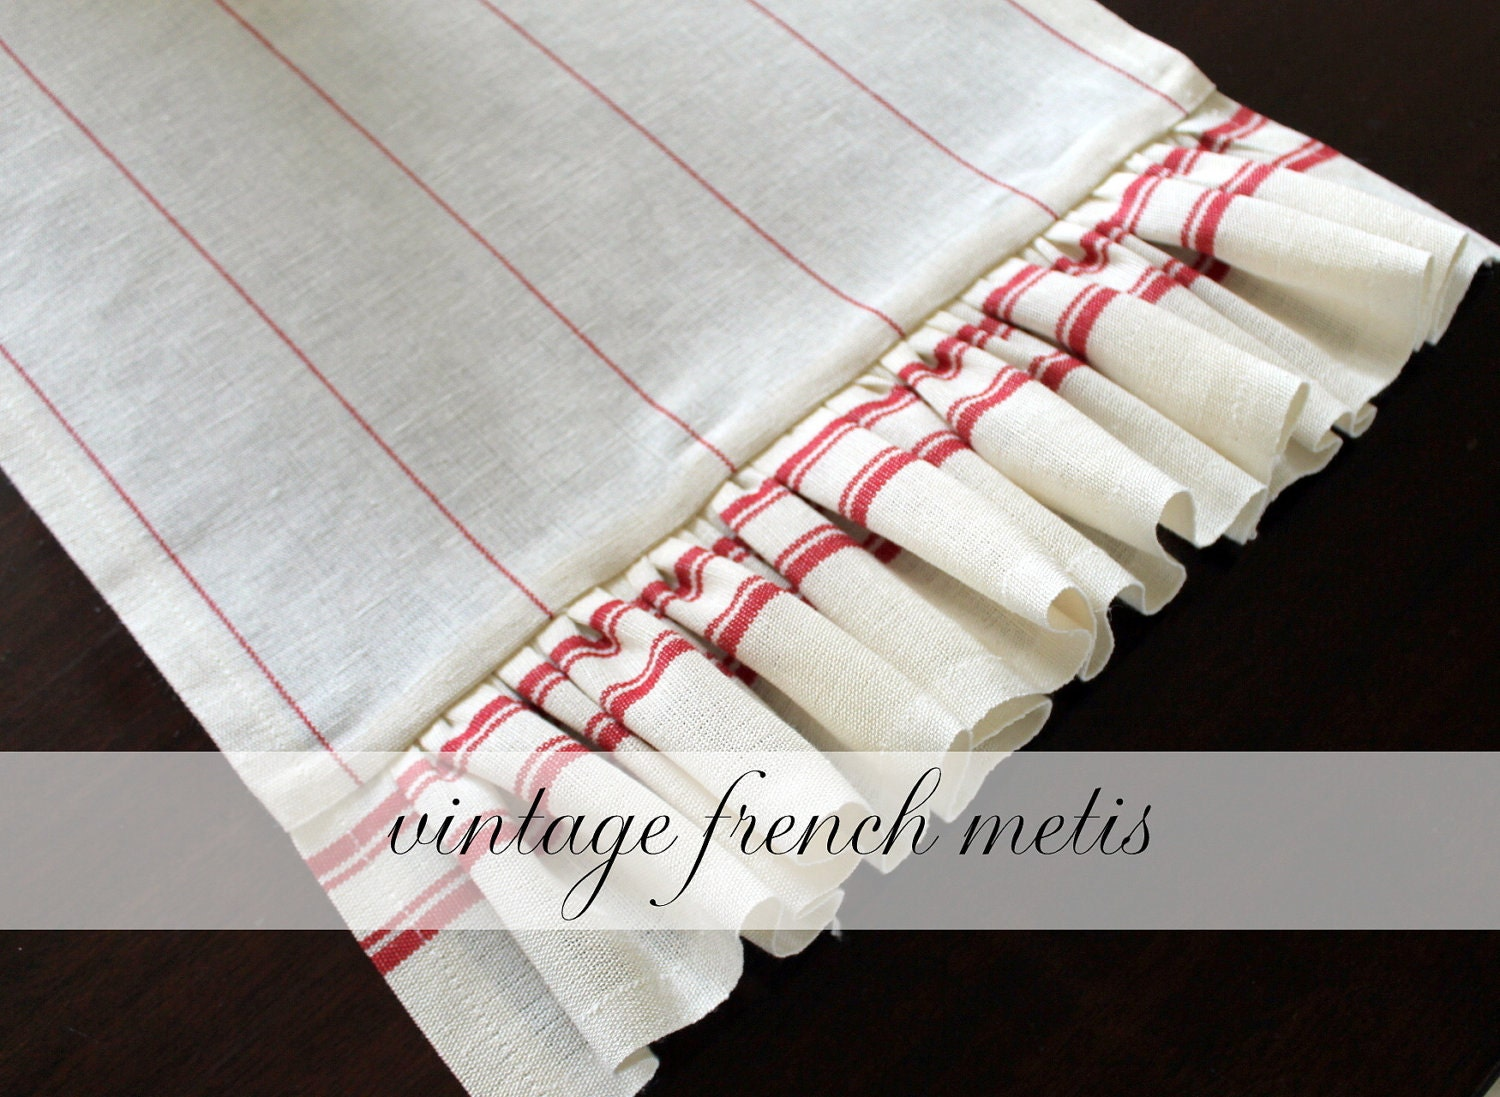 Vintage French Metis Cotton Linen Red and Cream Table Runner 14 x 62